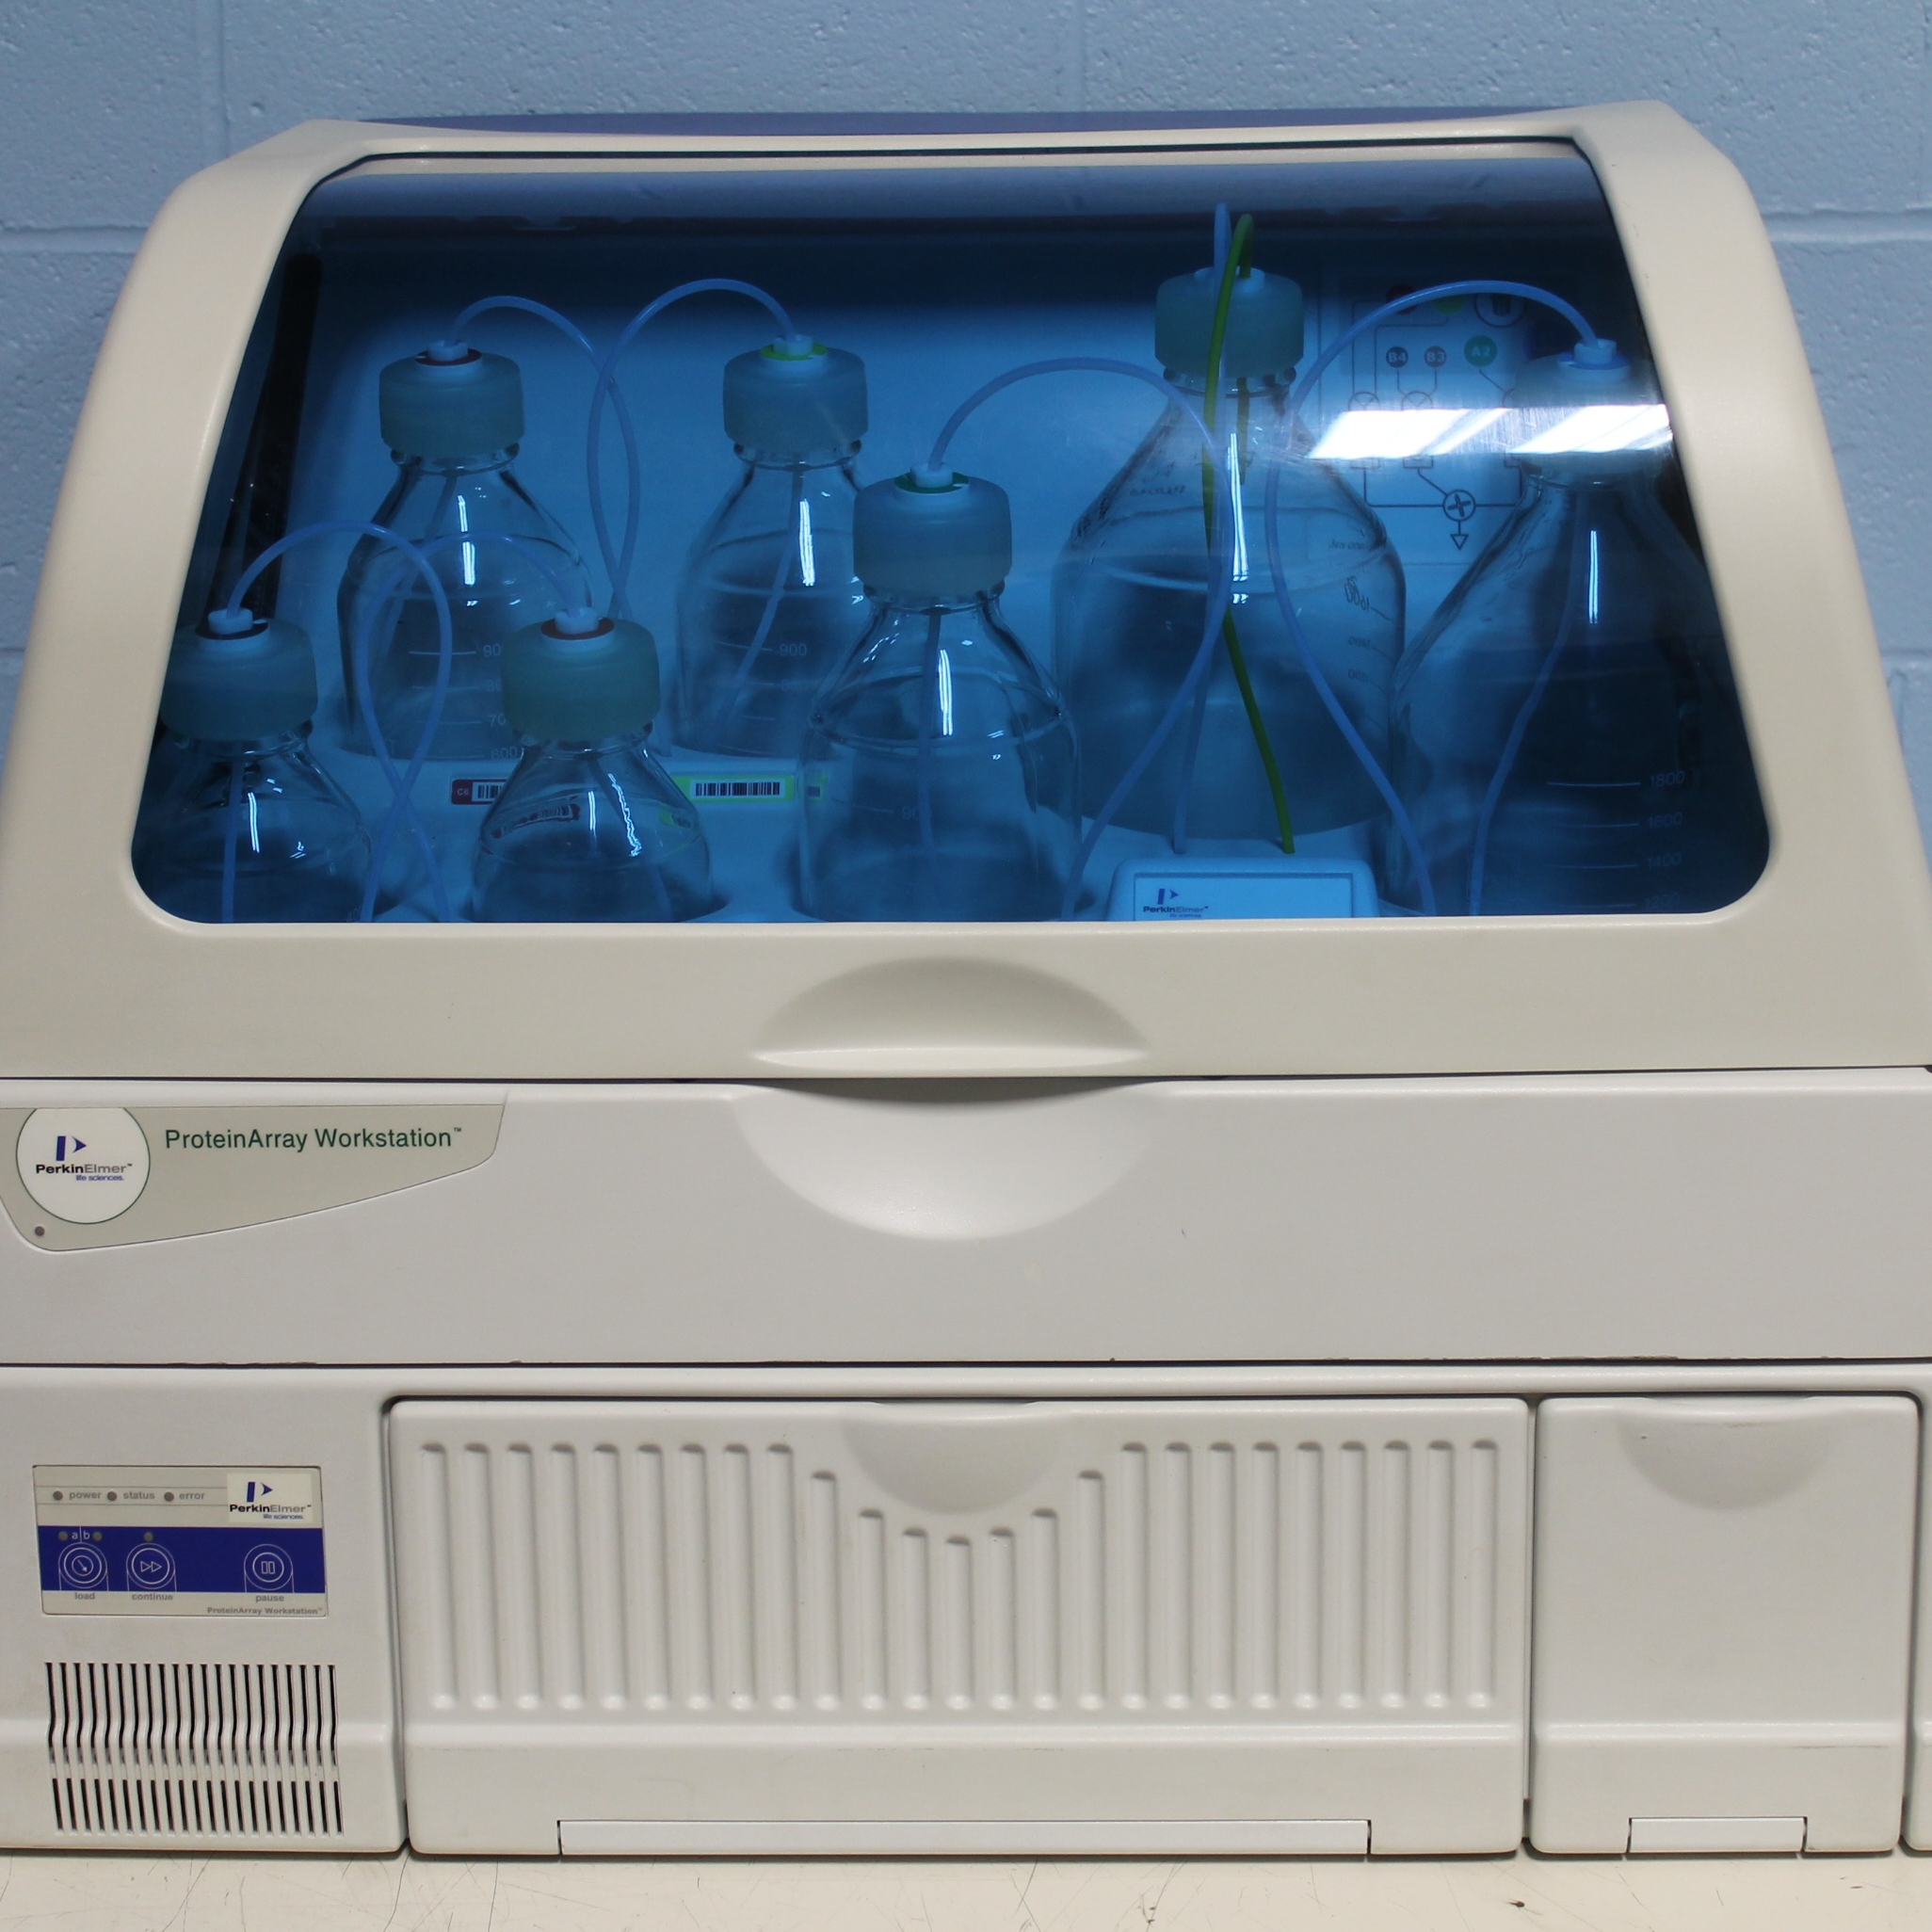 Perkin Elmer PAW-RDS Protein Array Workstation Image